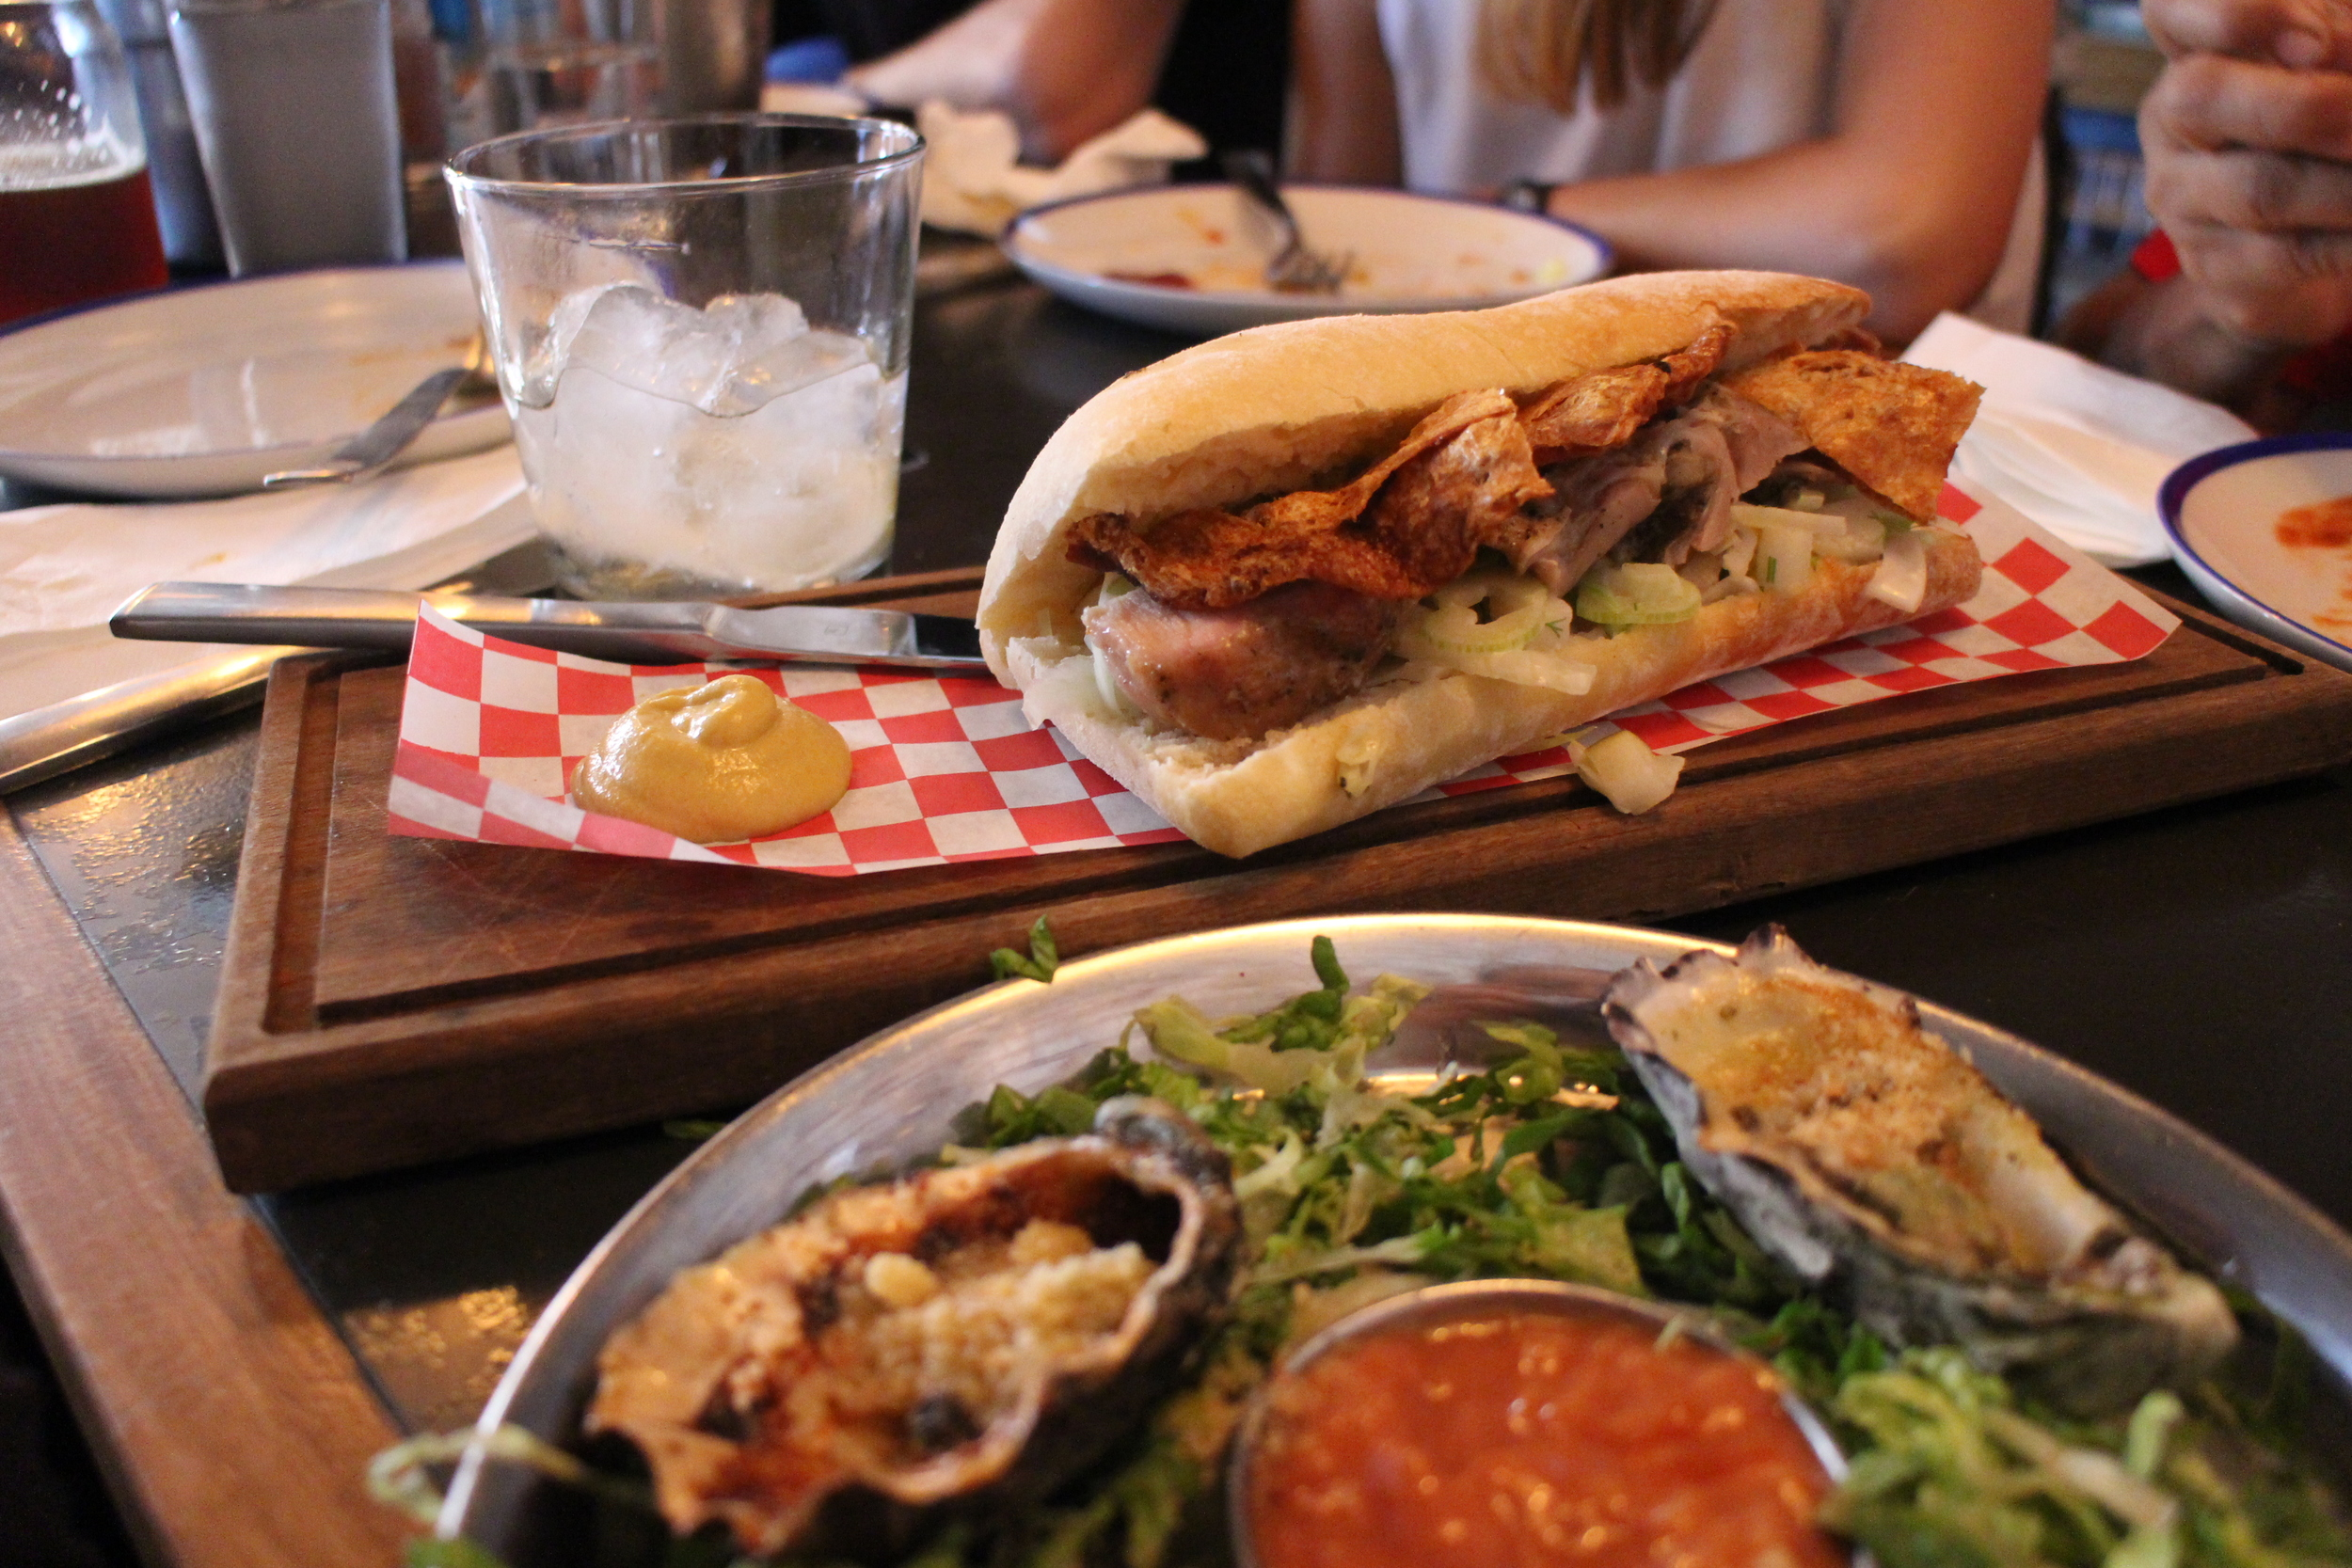 The Argentinian pork sandwich (hello crispy crackling) and a delicious plate of oysters